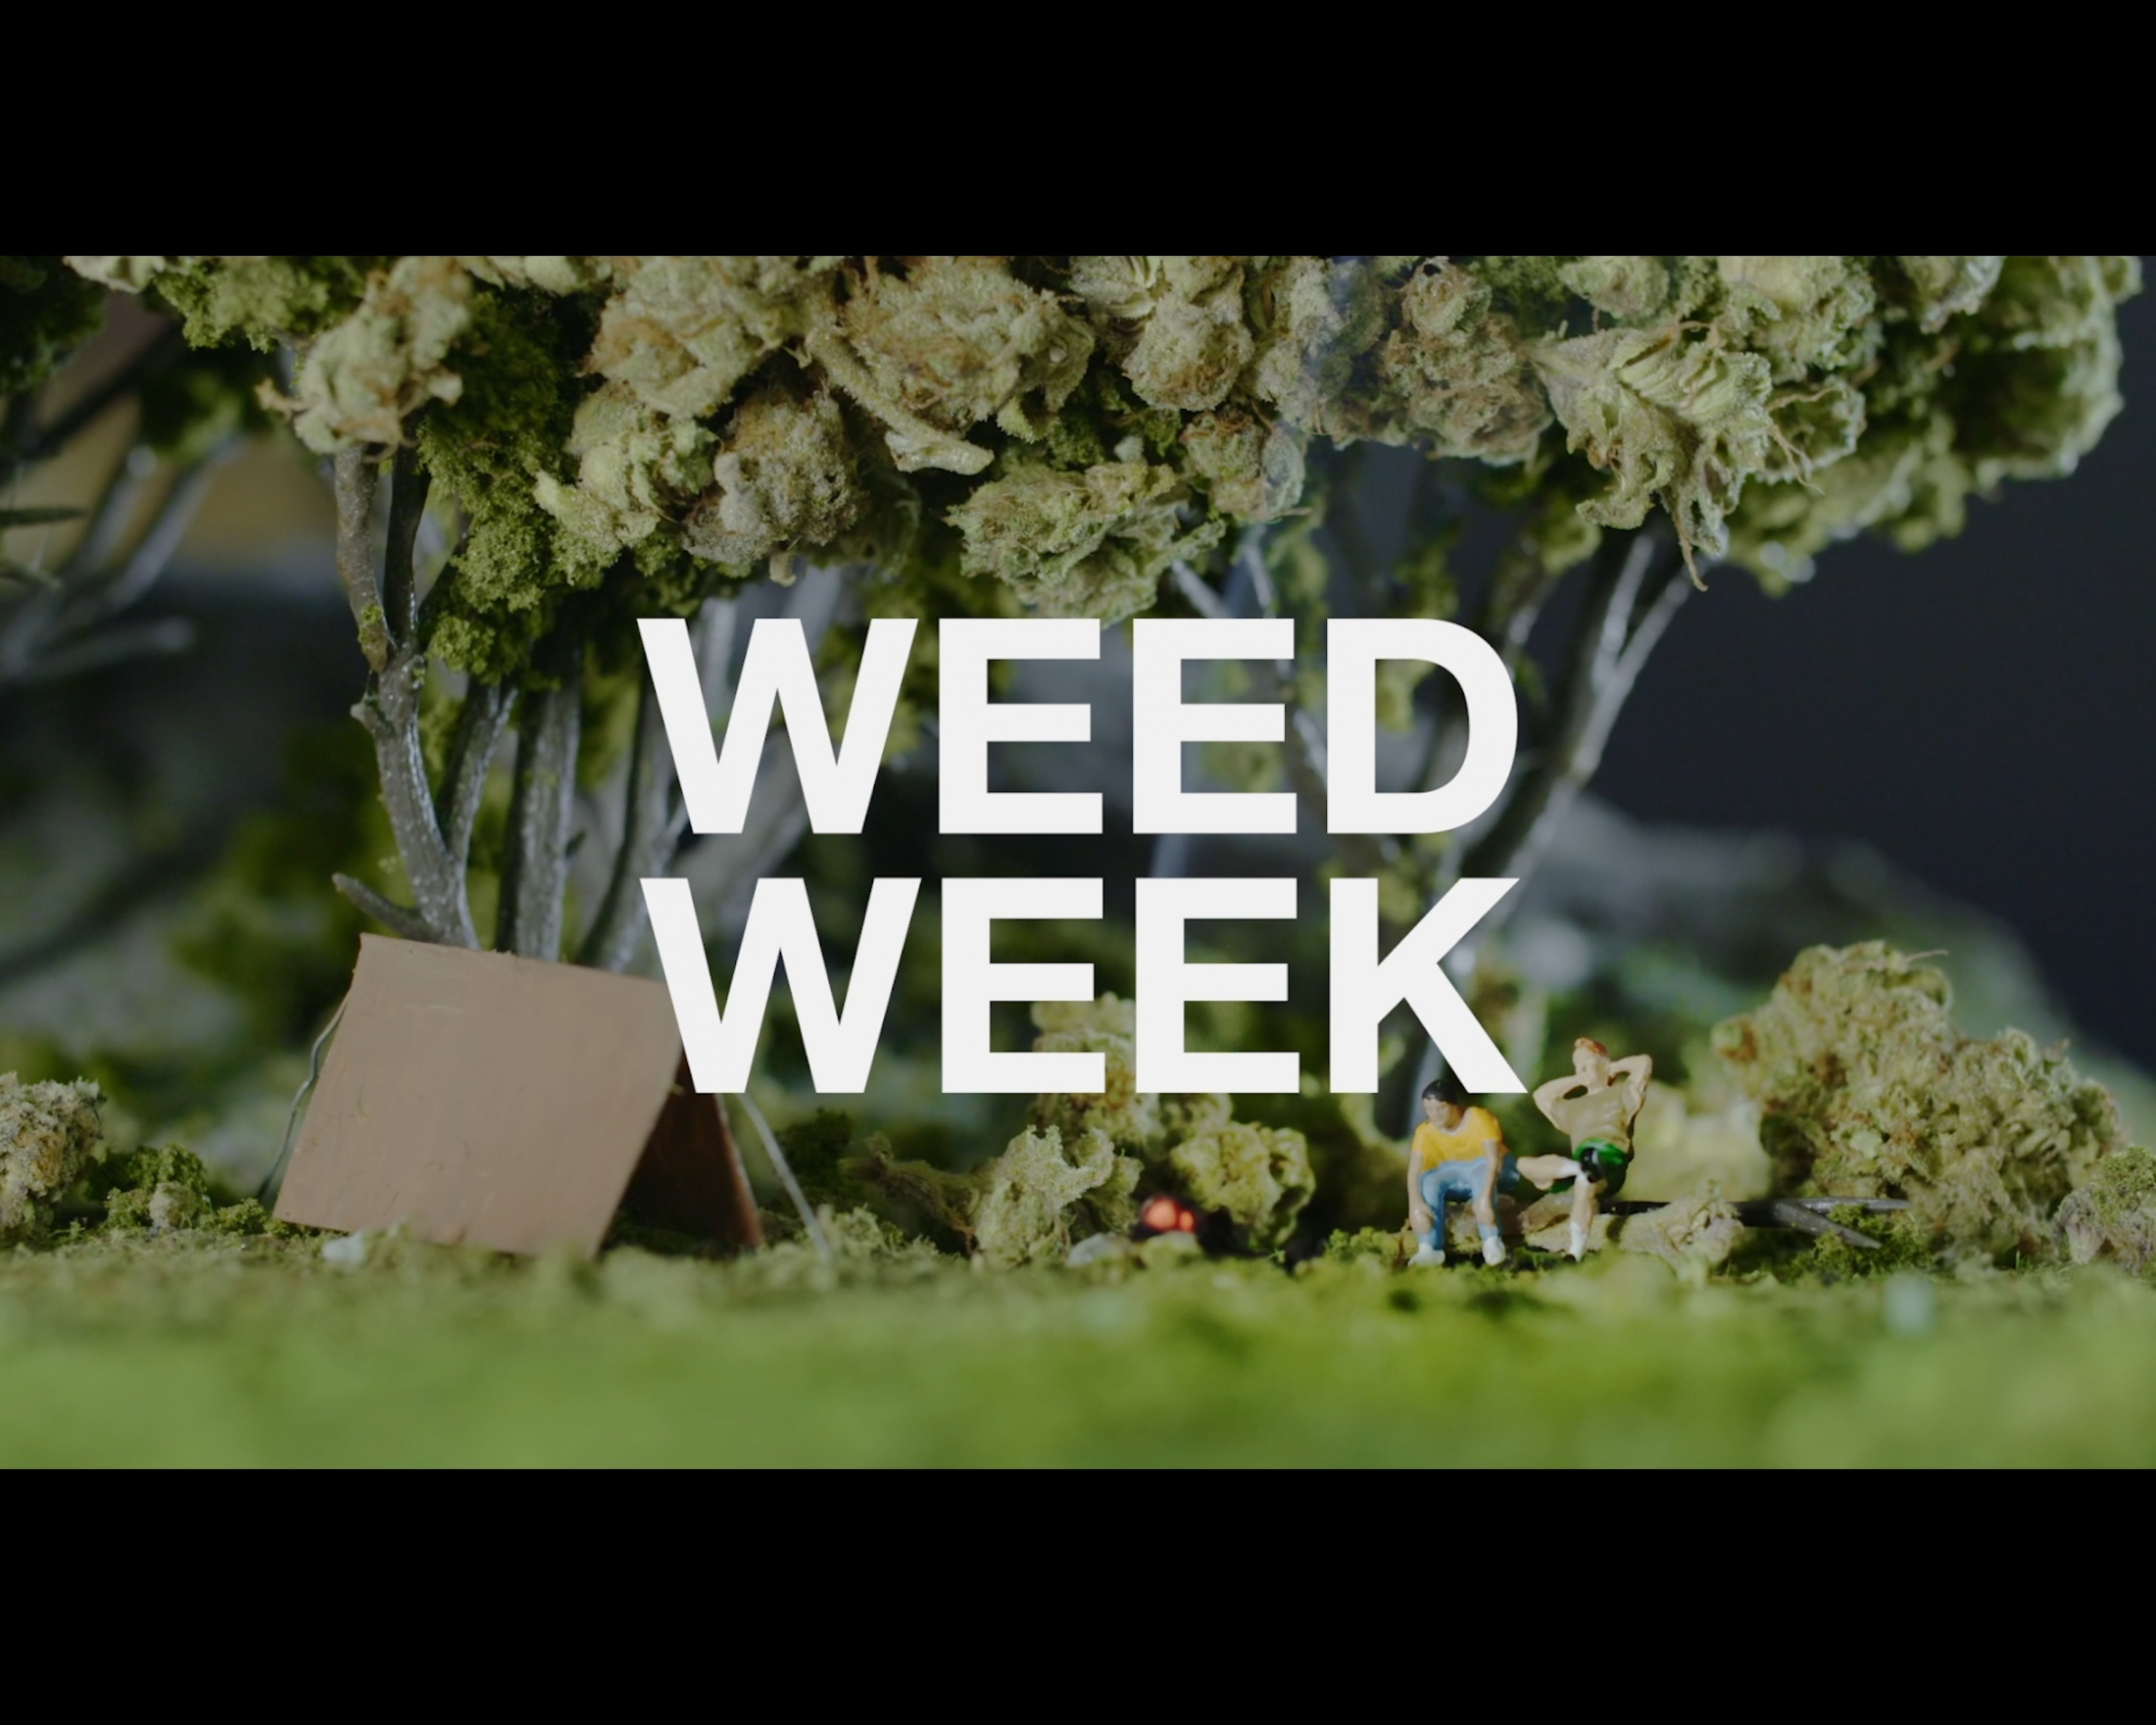 Image Media for Weed Week